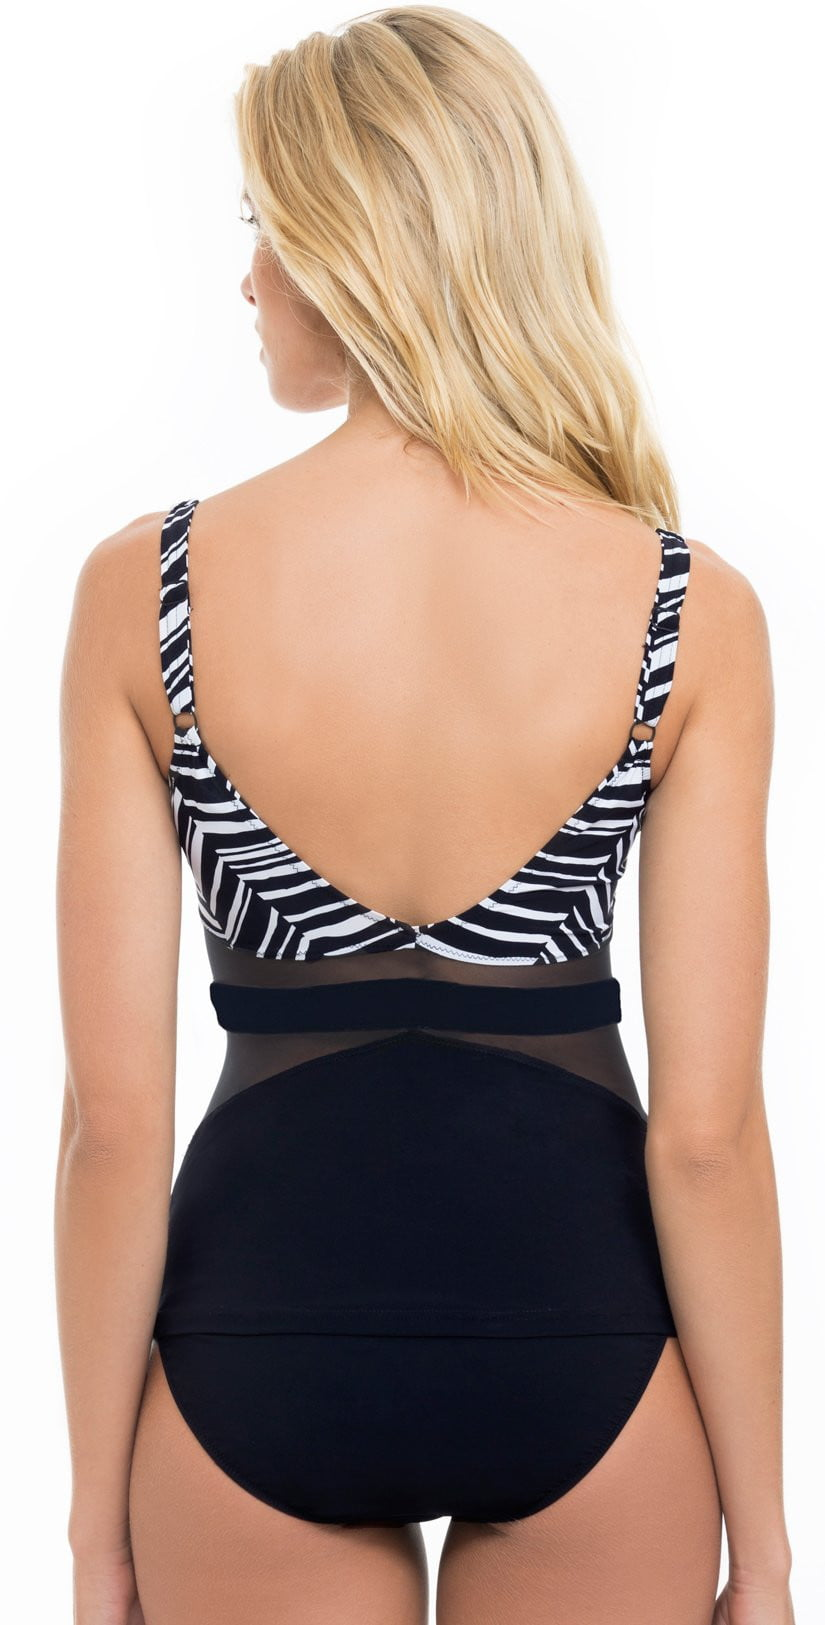 Profile by Gottex Marble Tankini Top E745-1B31-002: